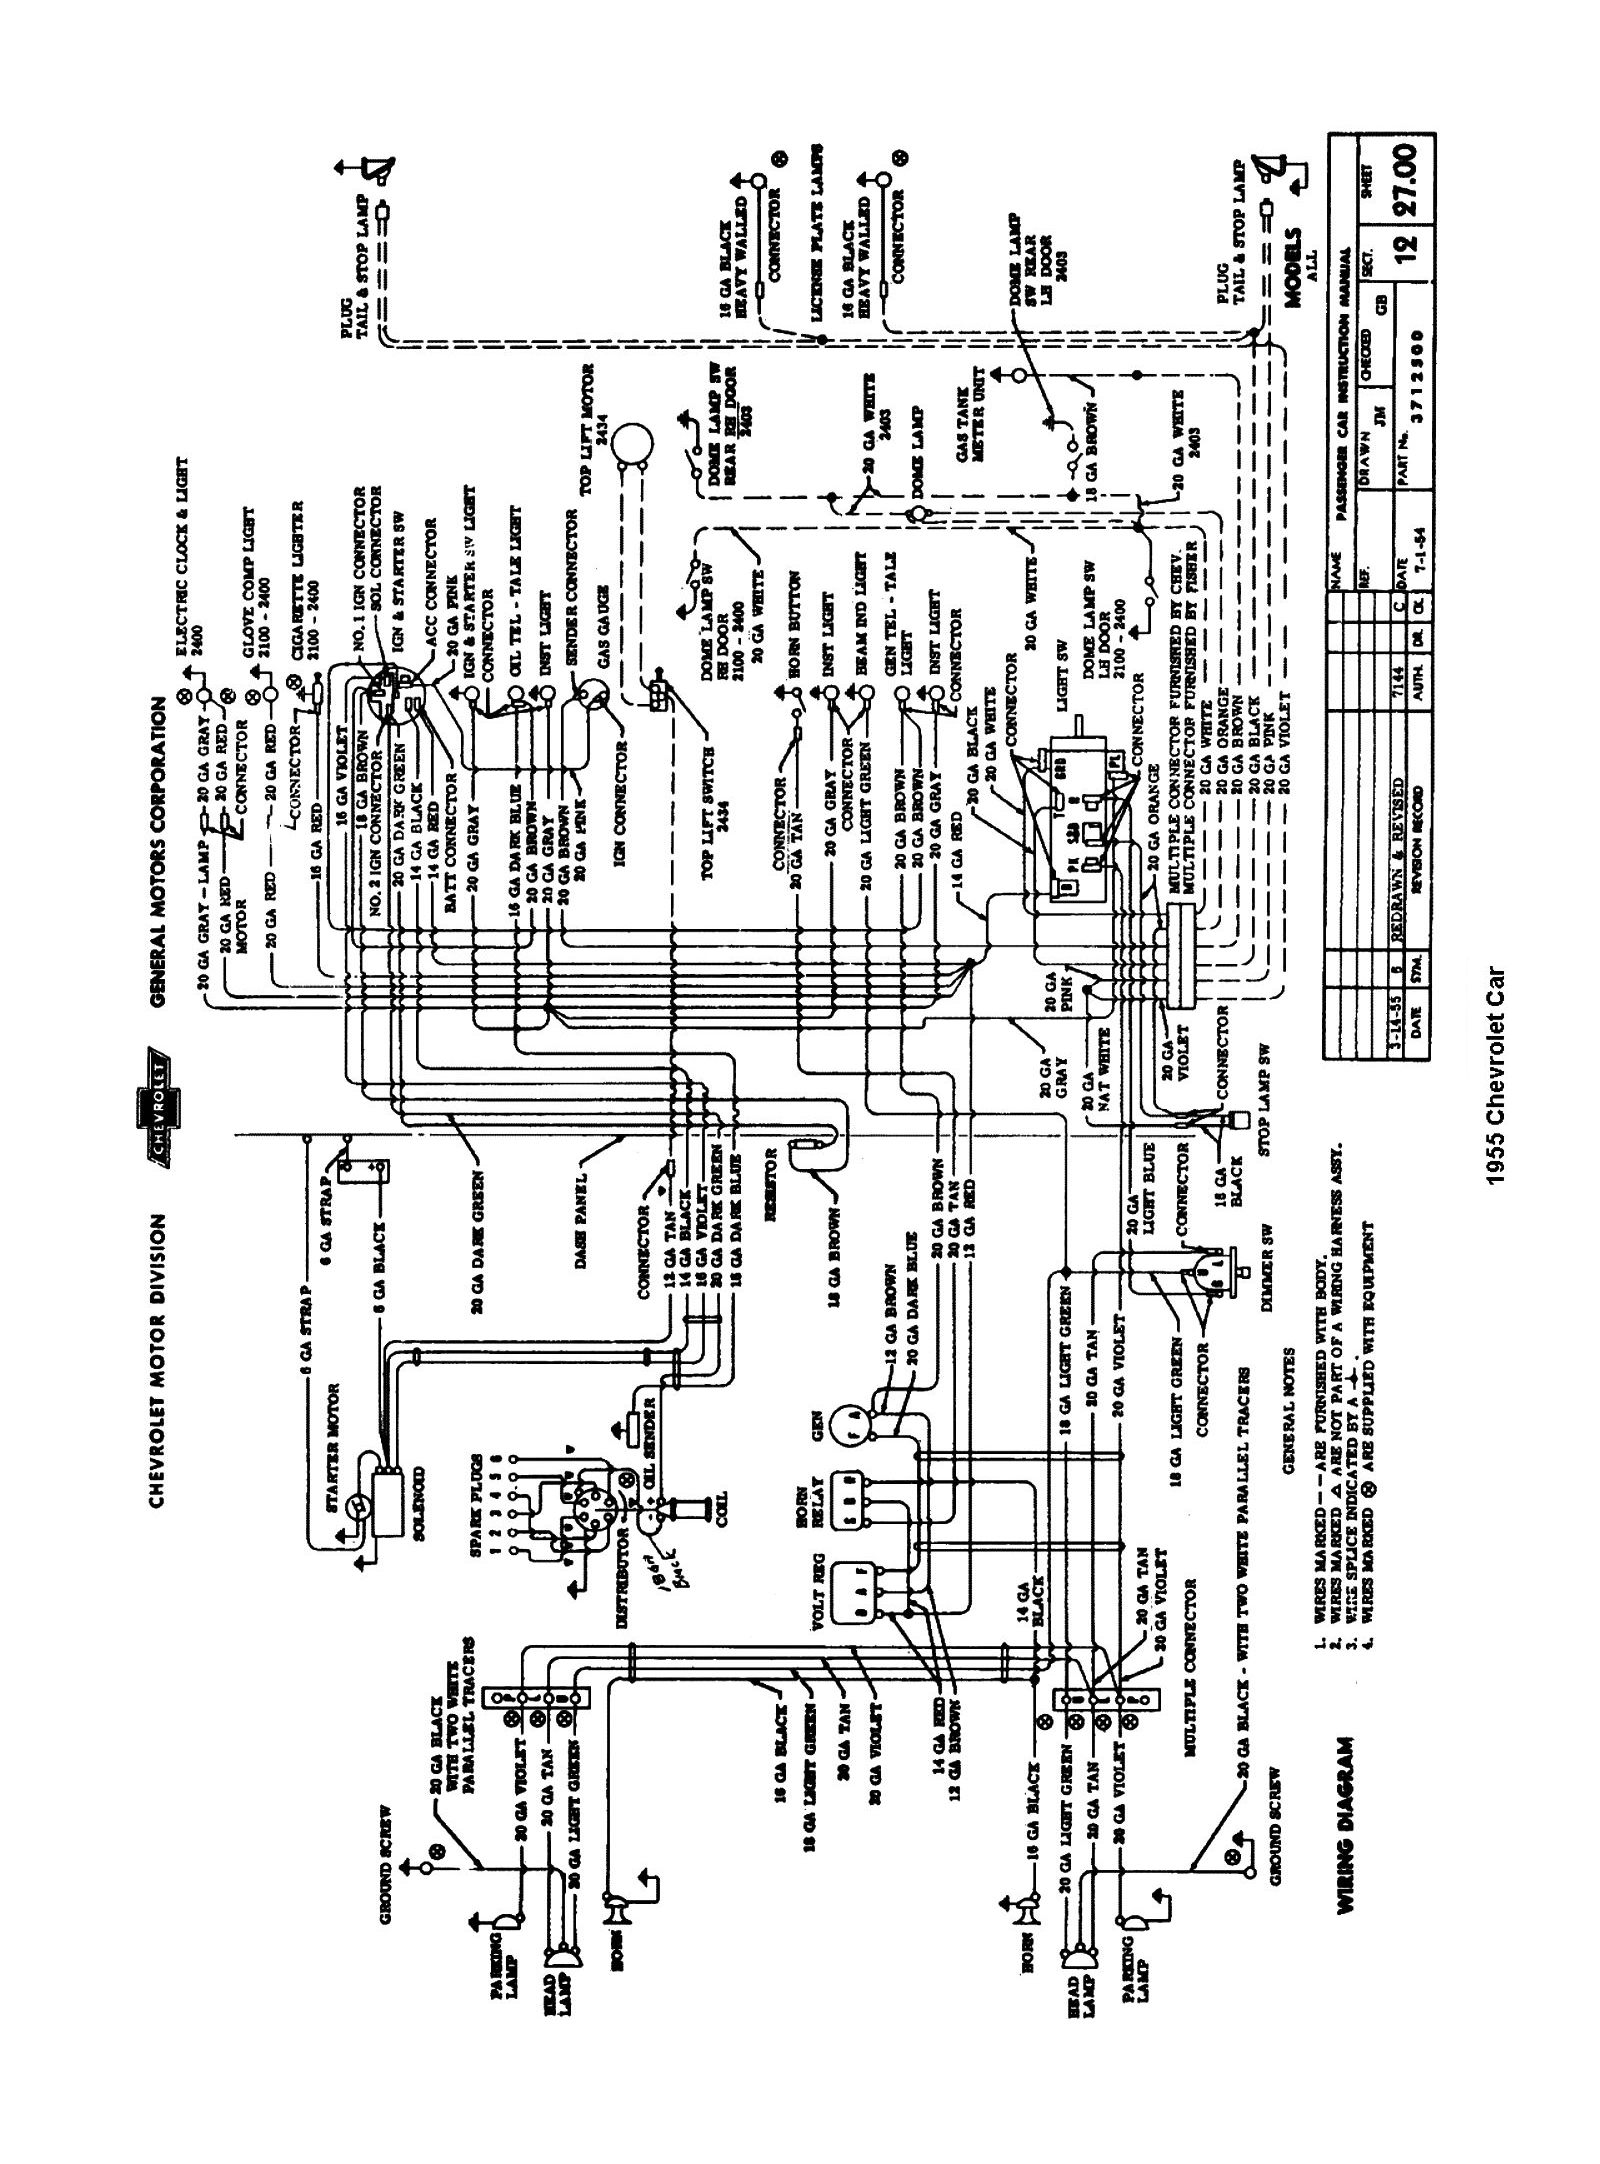 55car1 wiring diagram steering 1955 chevy car readingrat net 1957 chevy truck wiring diagram at fashall.co